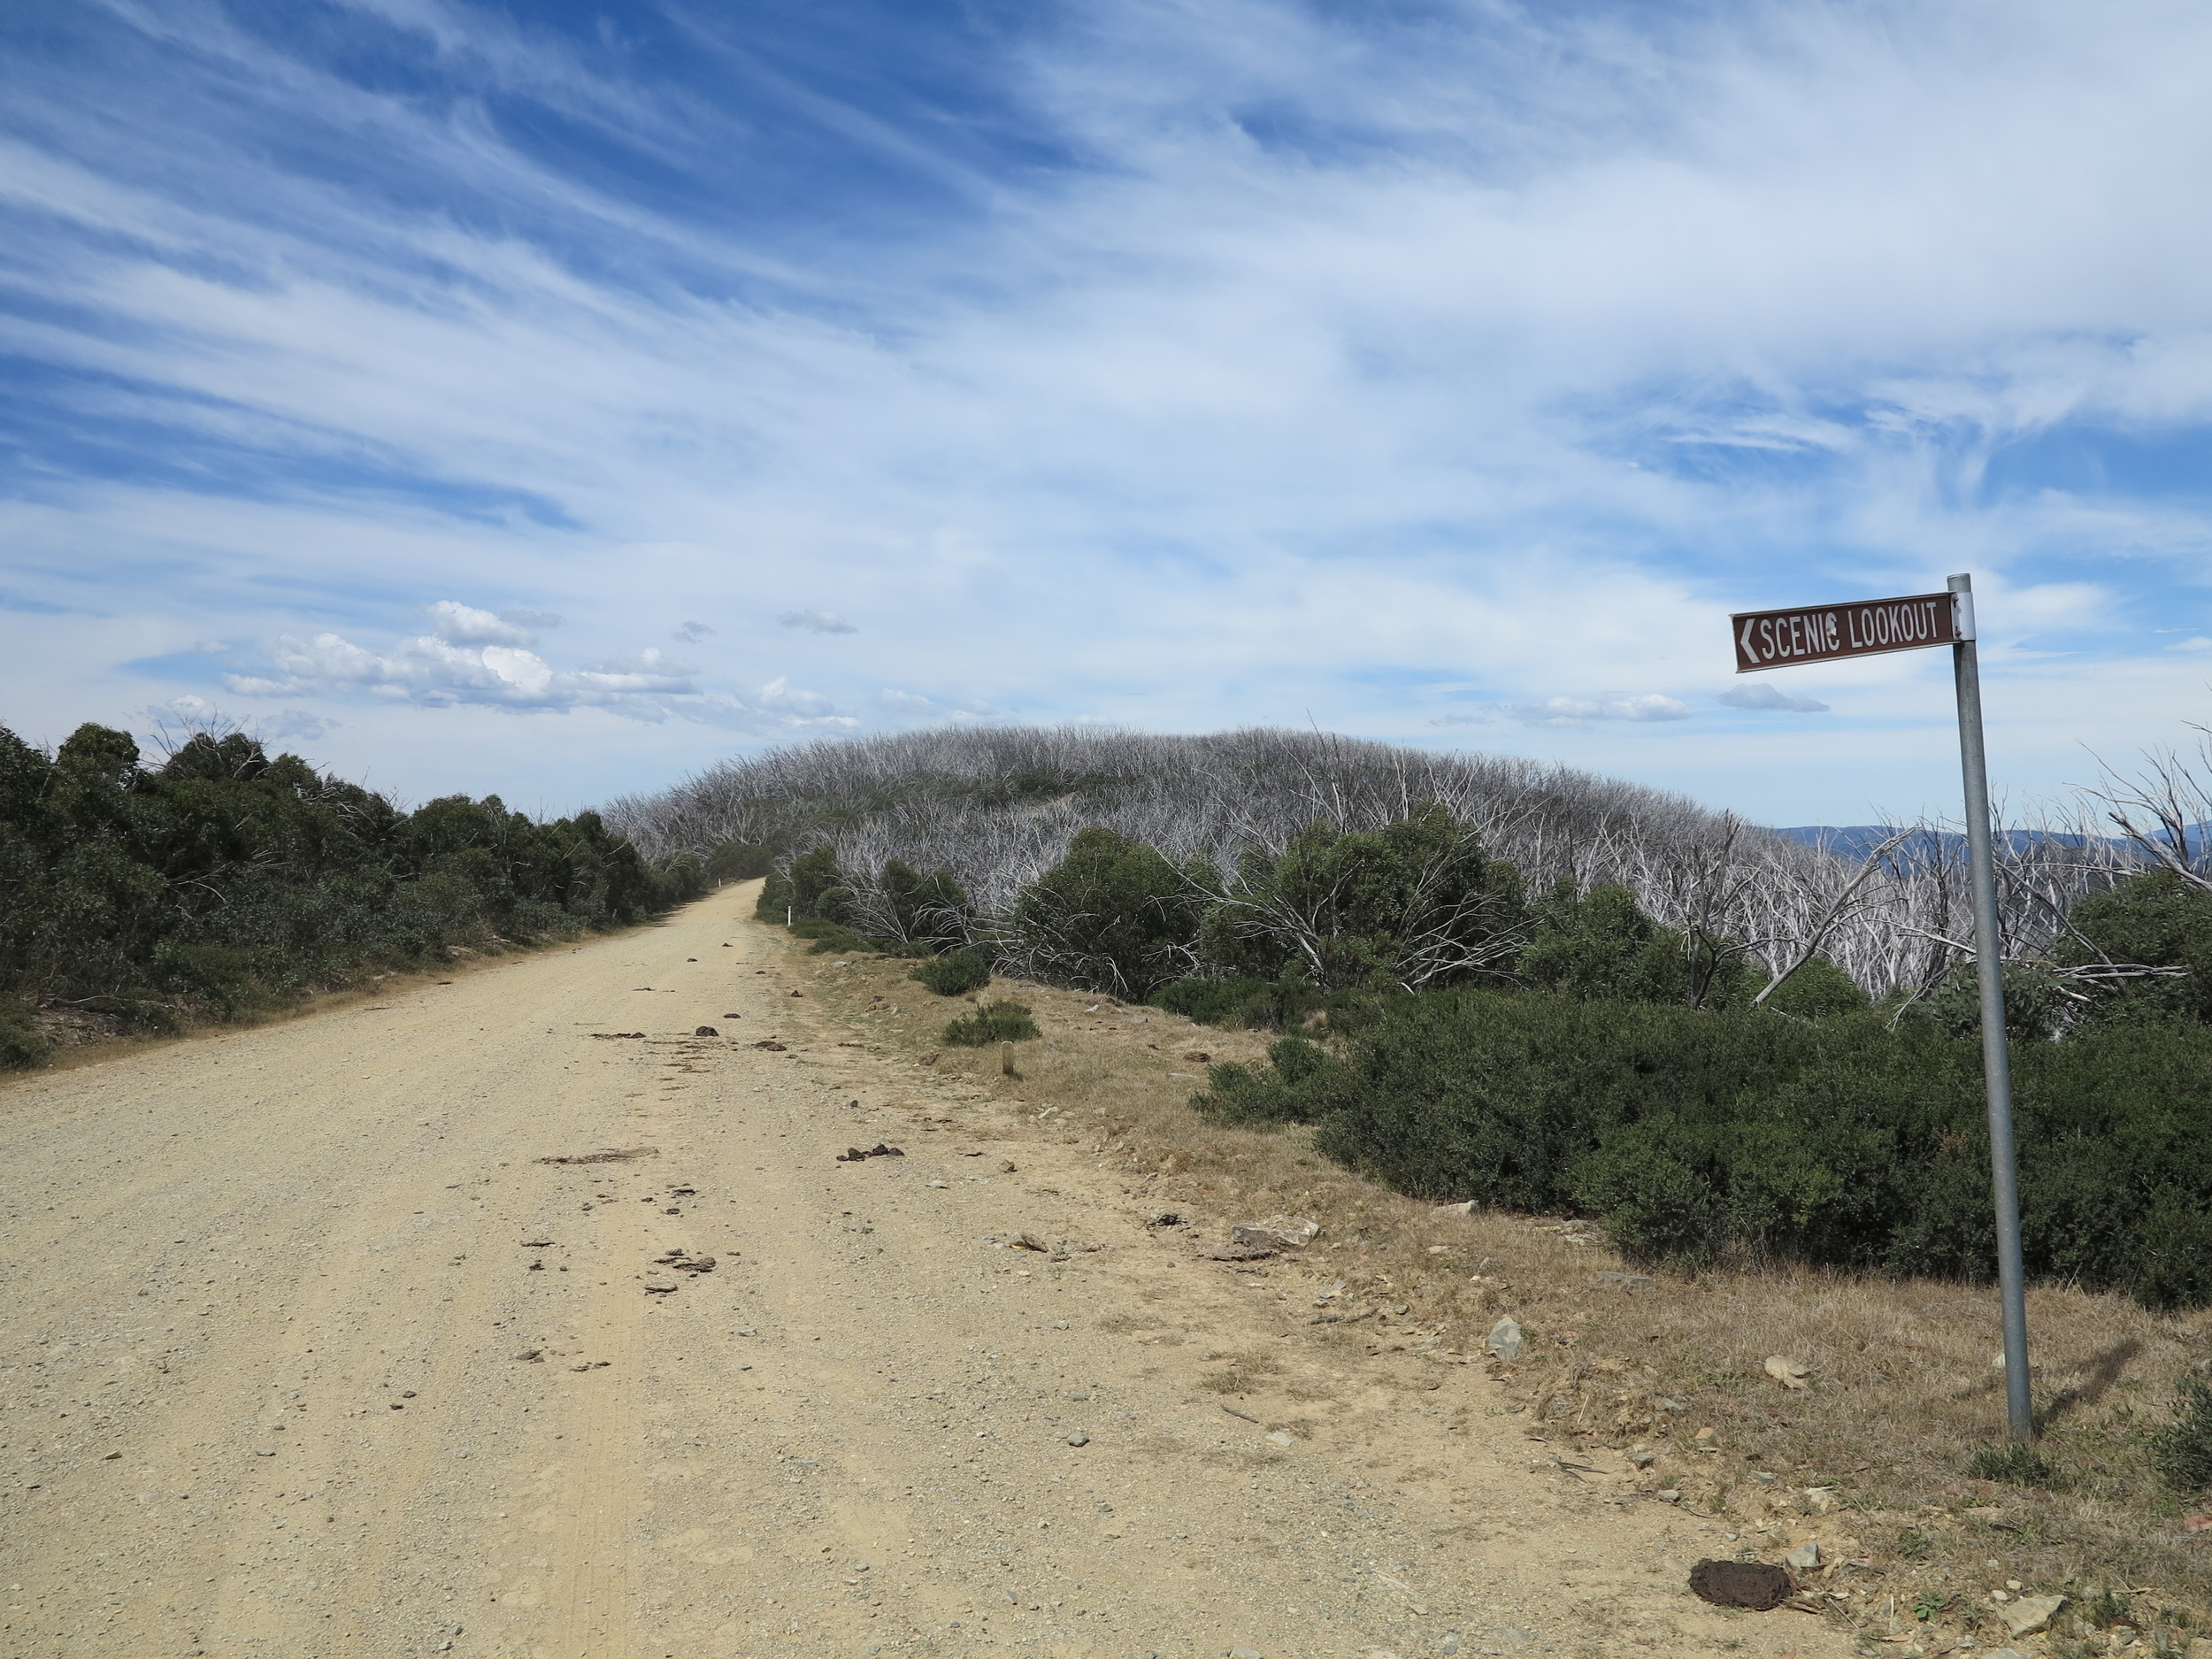 The Licola-Jamieson road. Photo: Alex Mullarky